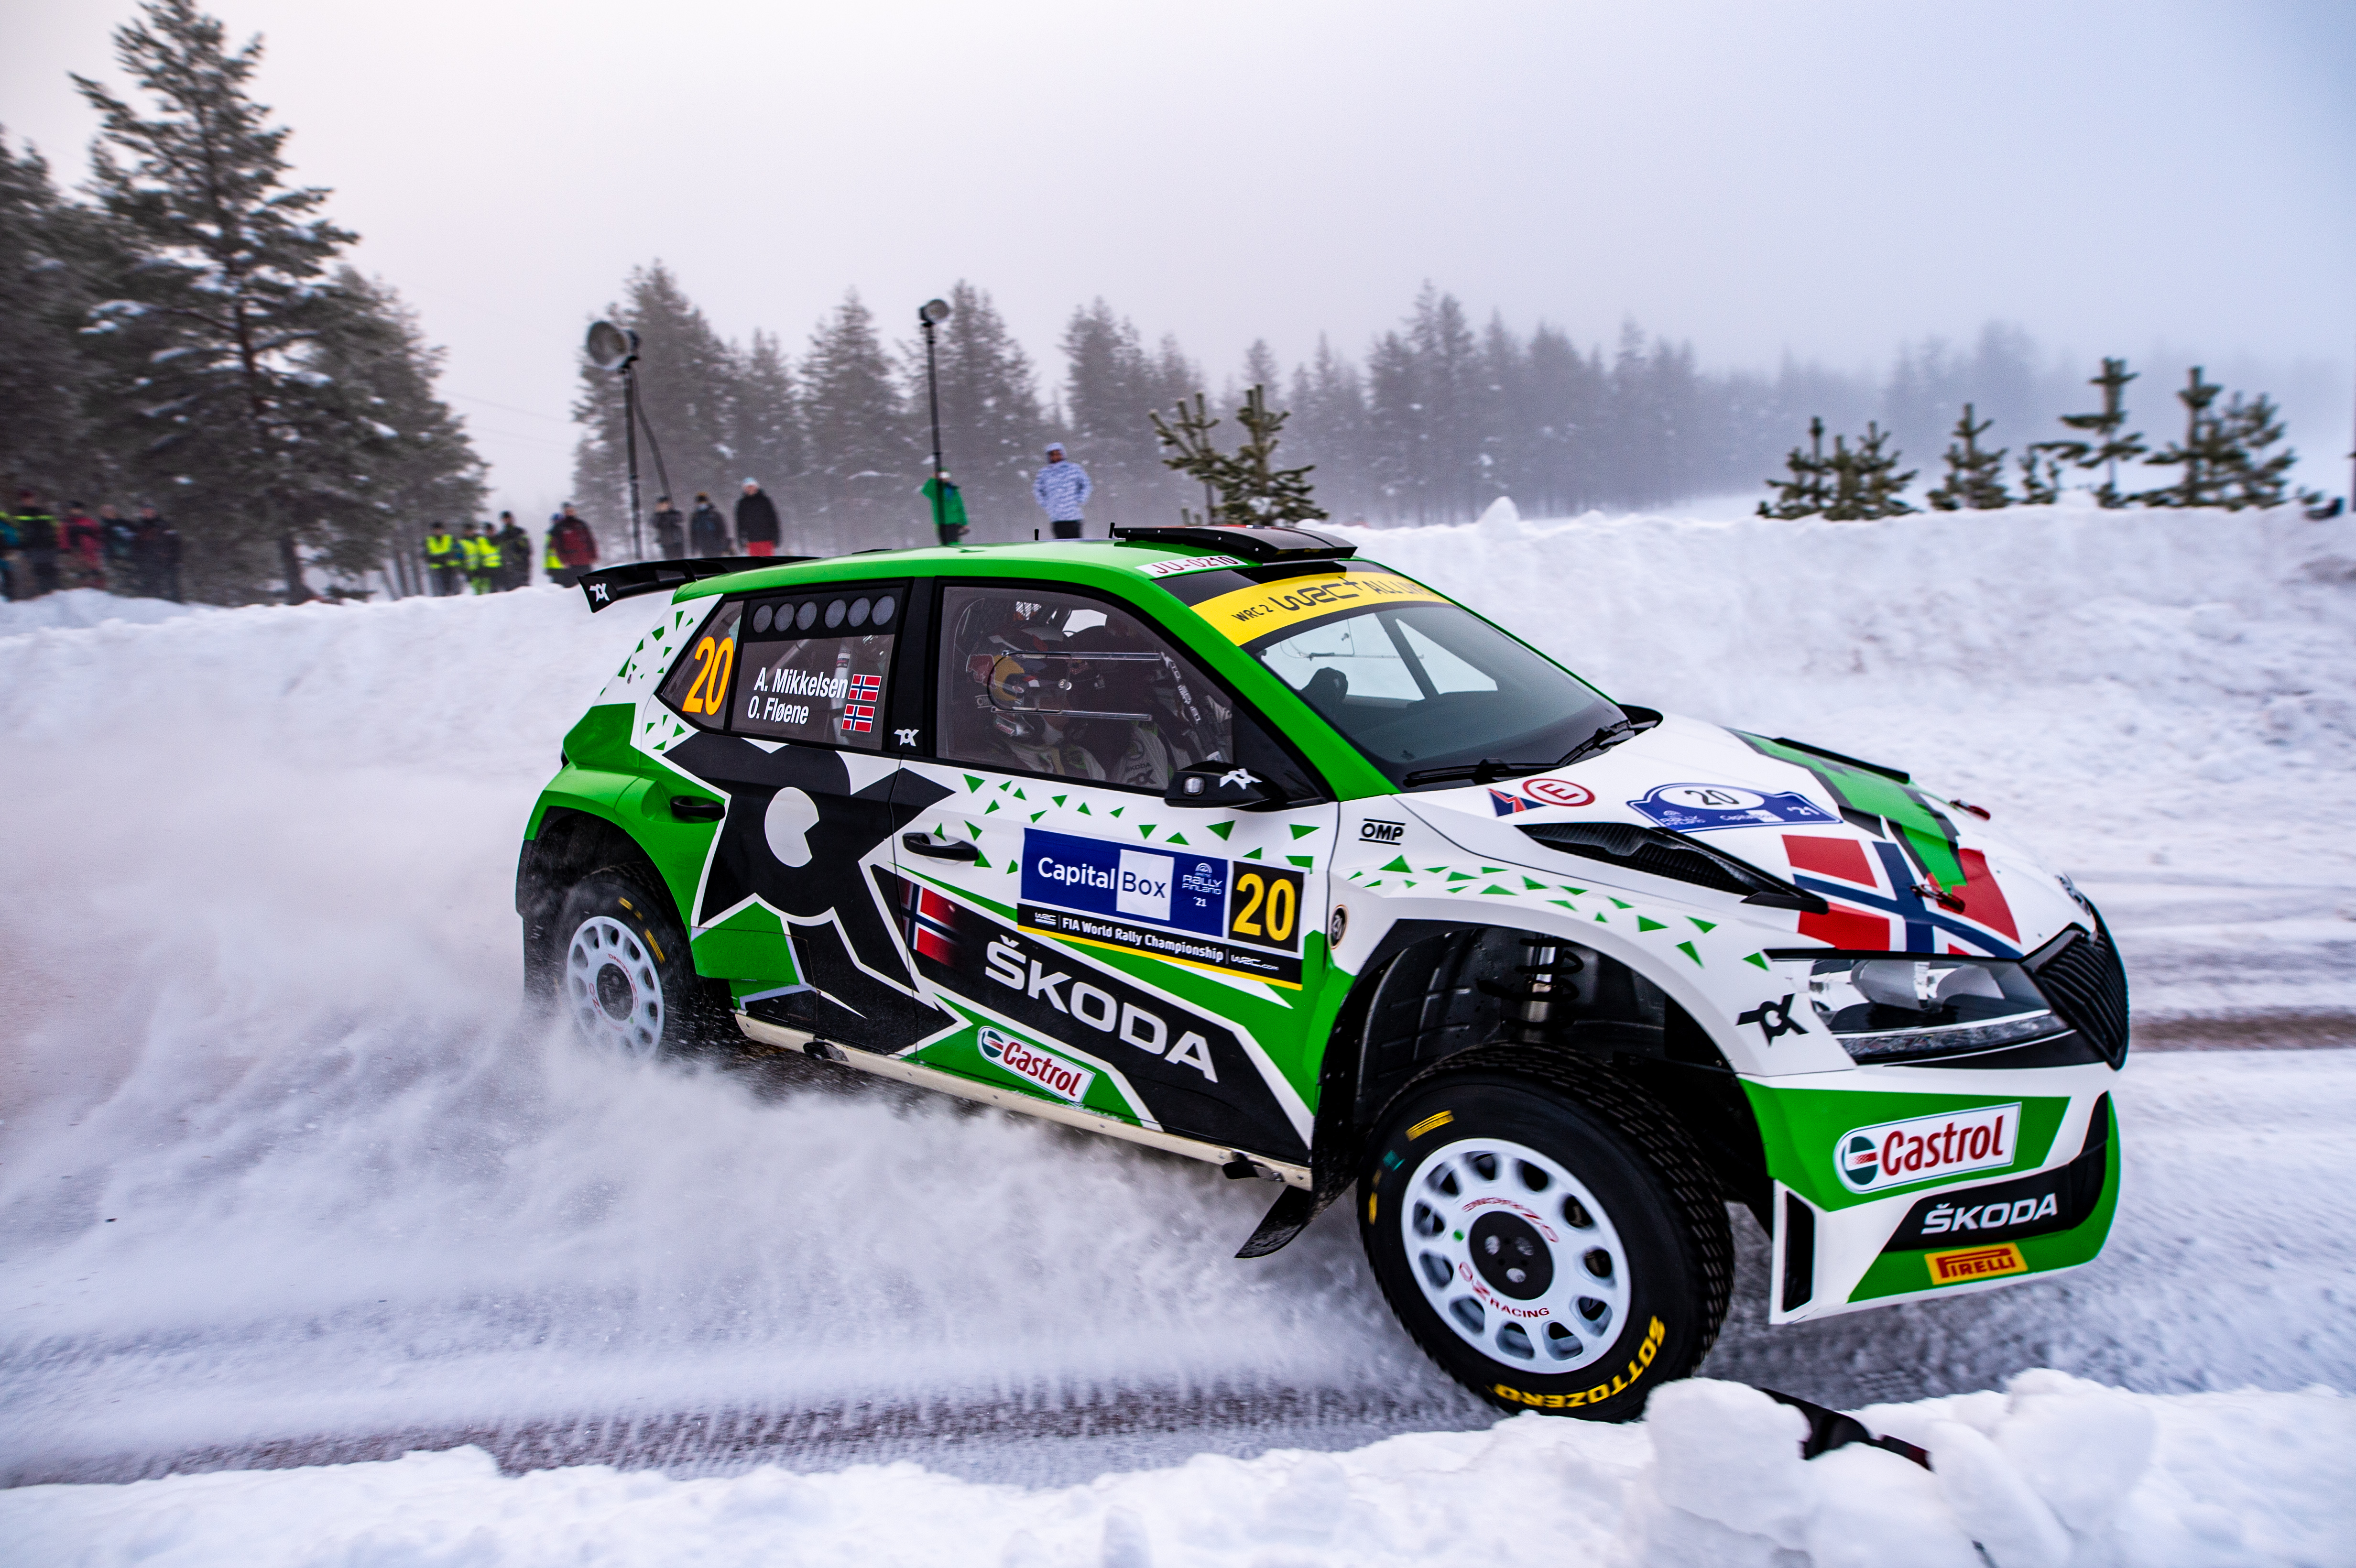 Arctic Rally Finland: SKODA Motorsport supported Andreas Mikkelsen finishes Friday leg third in WRC2 - Image 5